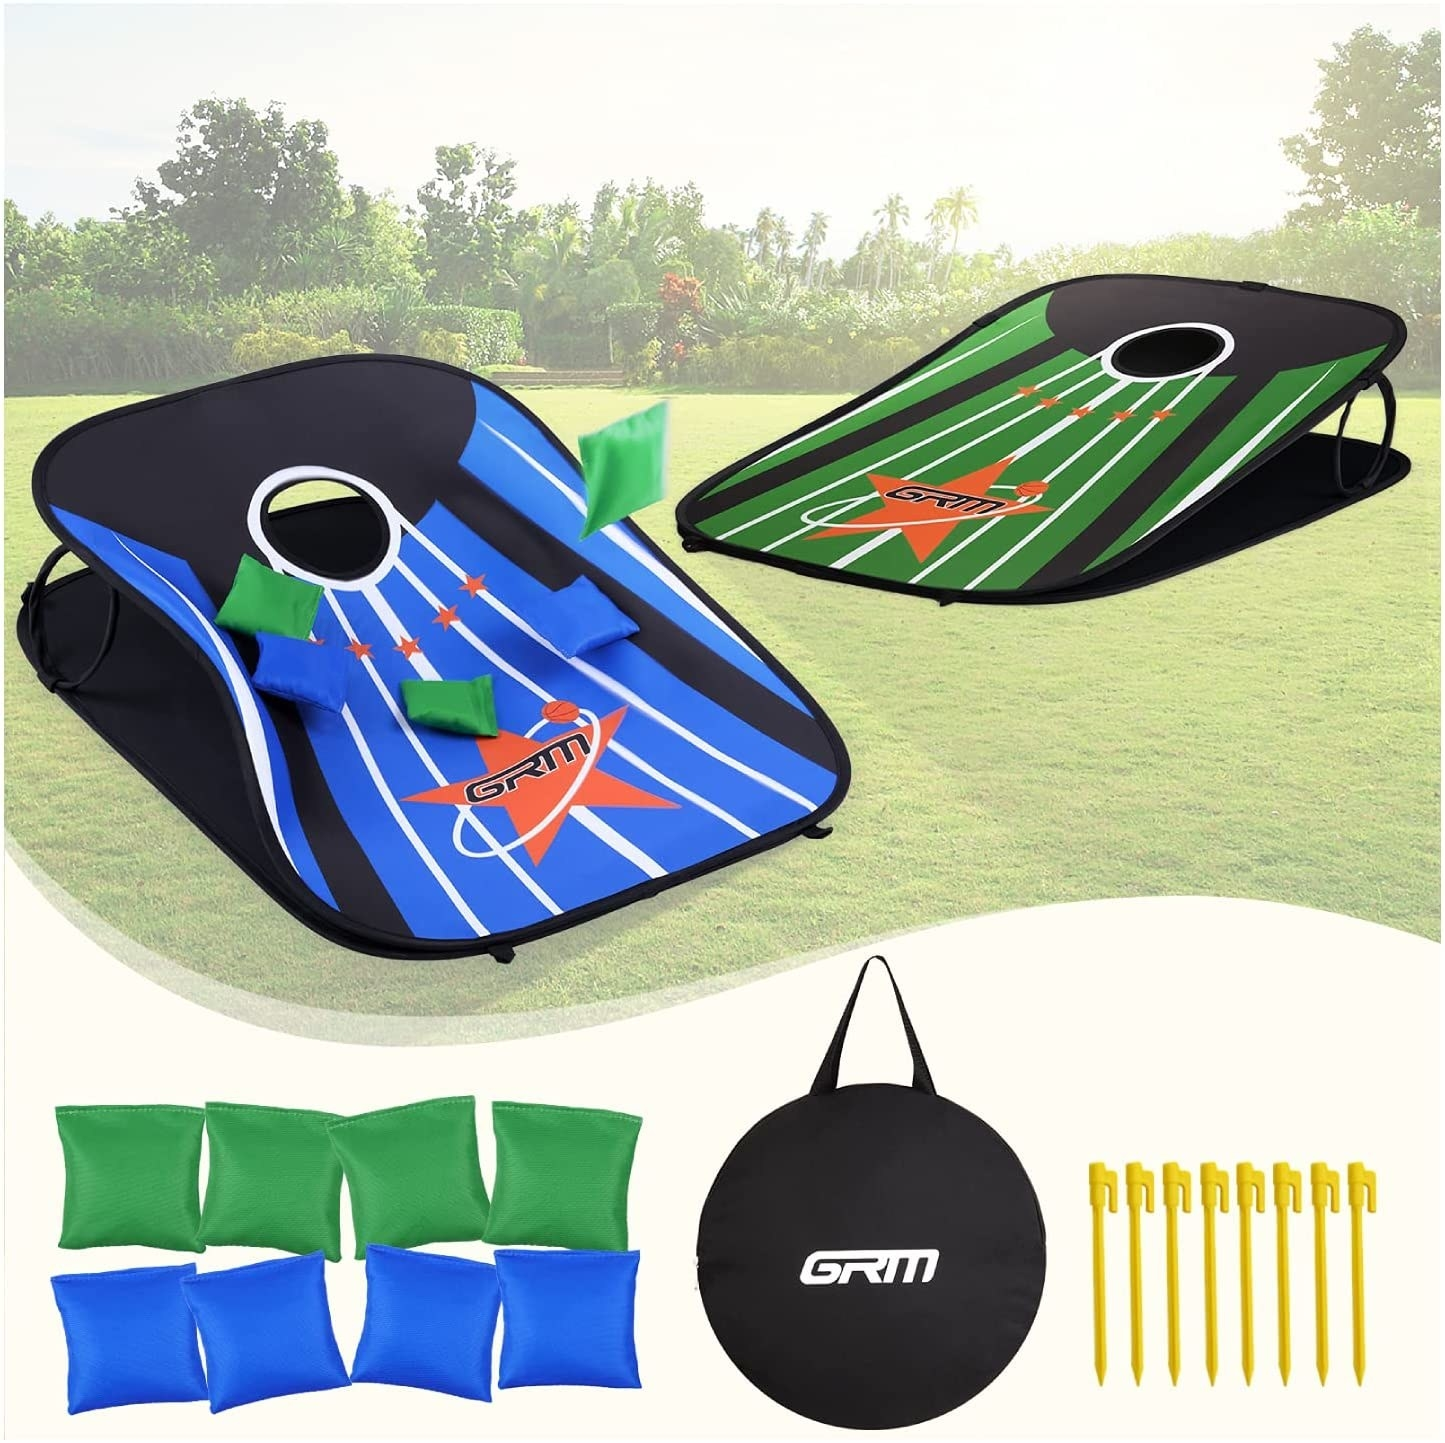 the collapsible cornhole game set